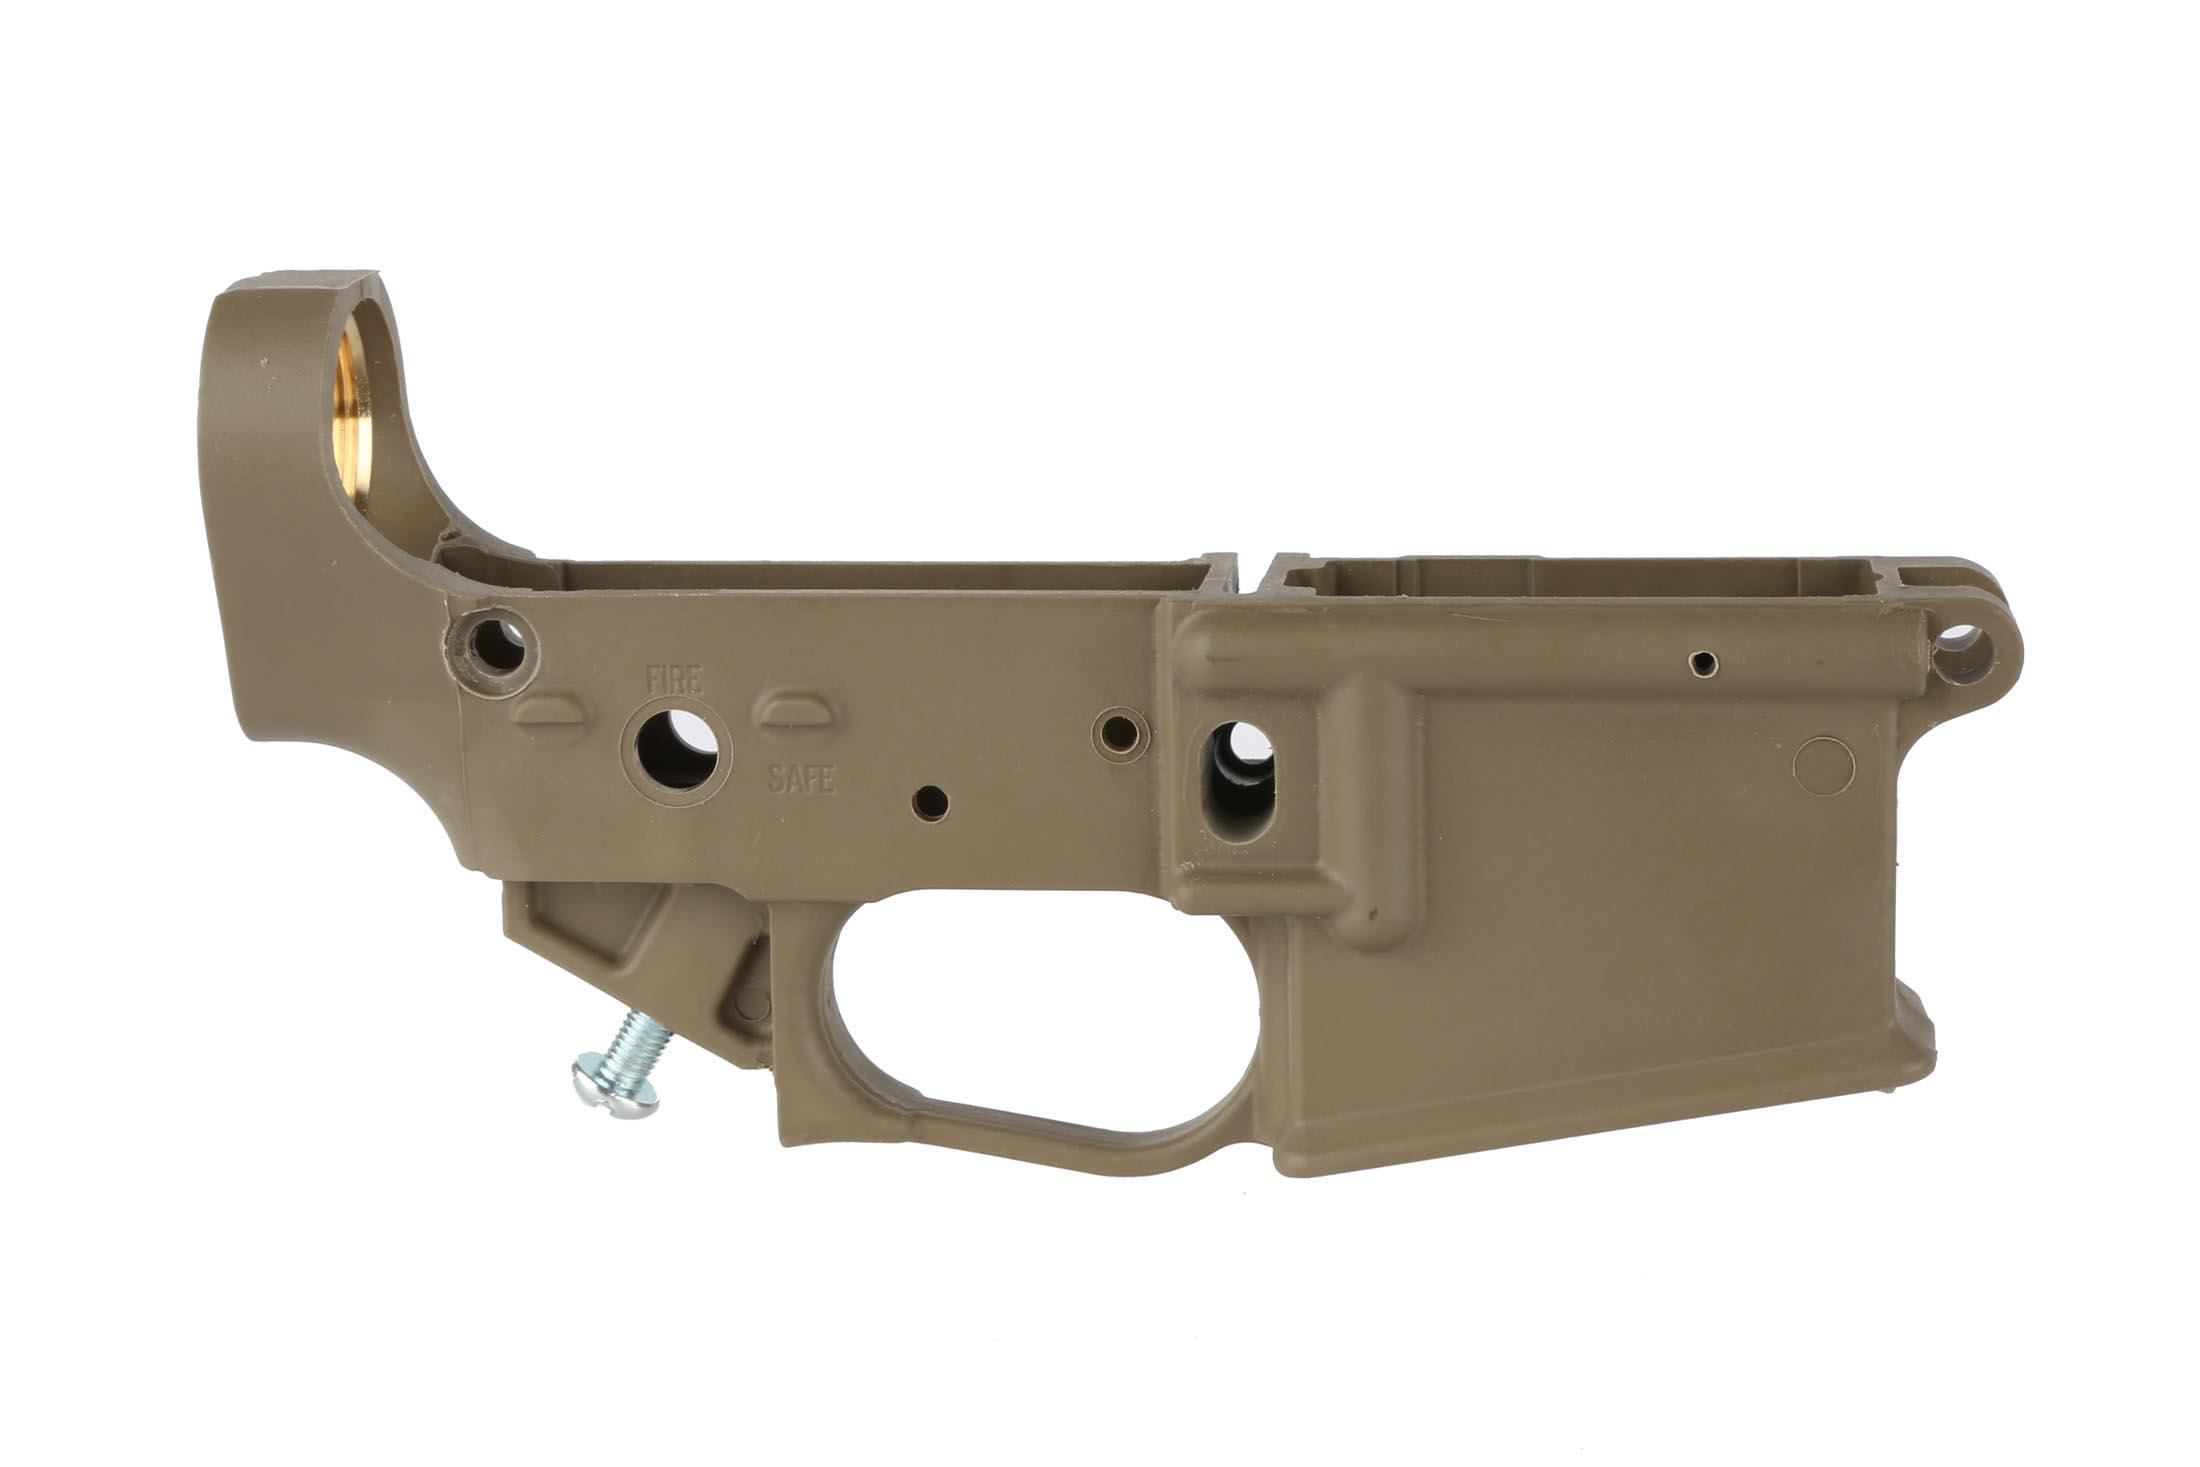 The Tennessee Arms Hybrid Polymer Ar15 Lower Receiver Is Stripped So You Can Finish It With